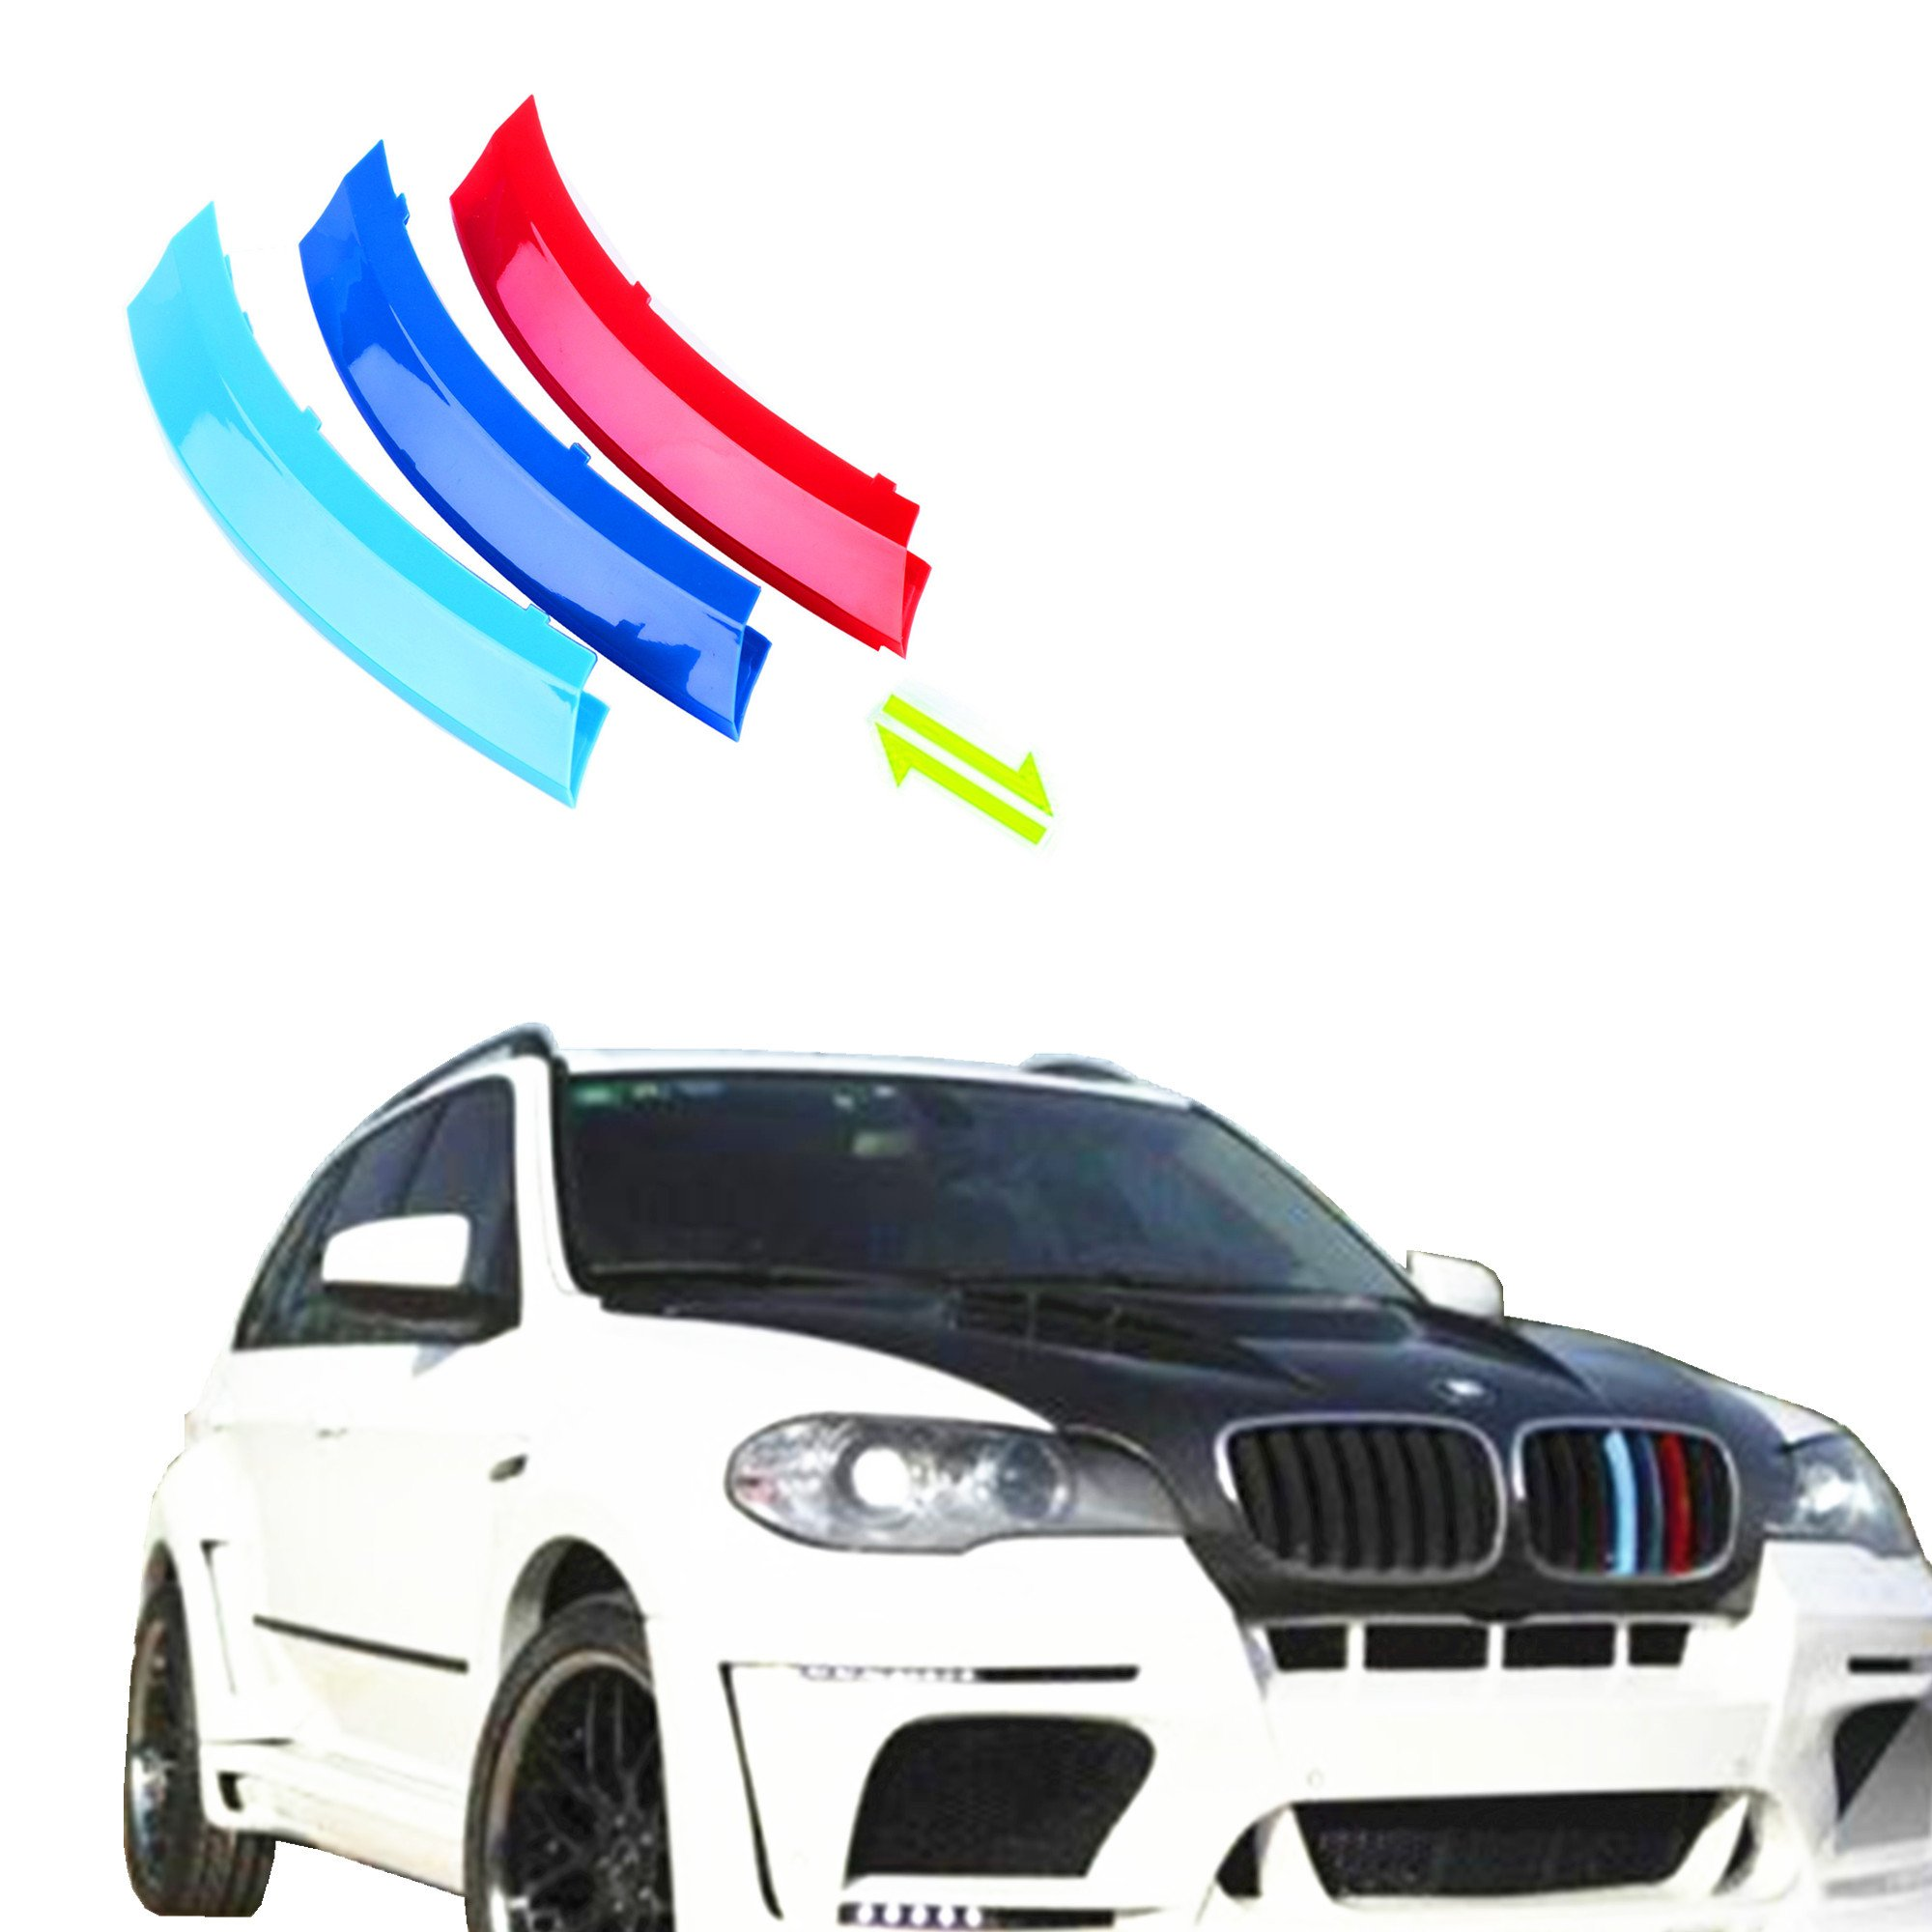 Jackey Awesome Exact Fit ///M-Colored Grille Insert Trims For 2008-2013 BMW E70 X5, 2008-2011 E71 X6 Center Kidney Grill